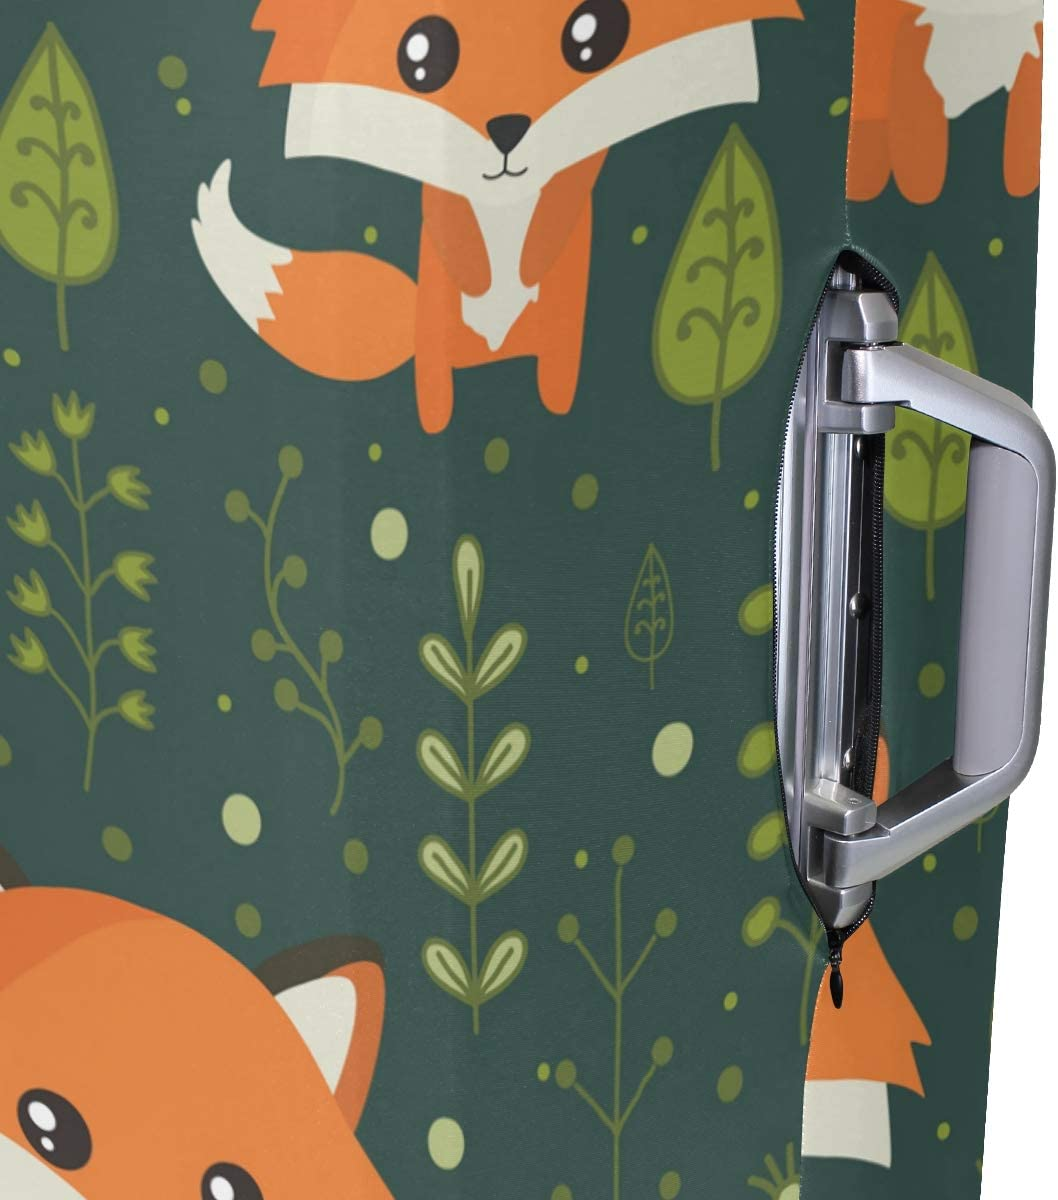 FOLPPLY Cute Cartoon Animal Fox Forest Luggage Cover Baggage Suitcase Travel Protector Fit for 18-32 Inch